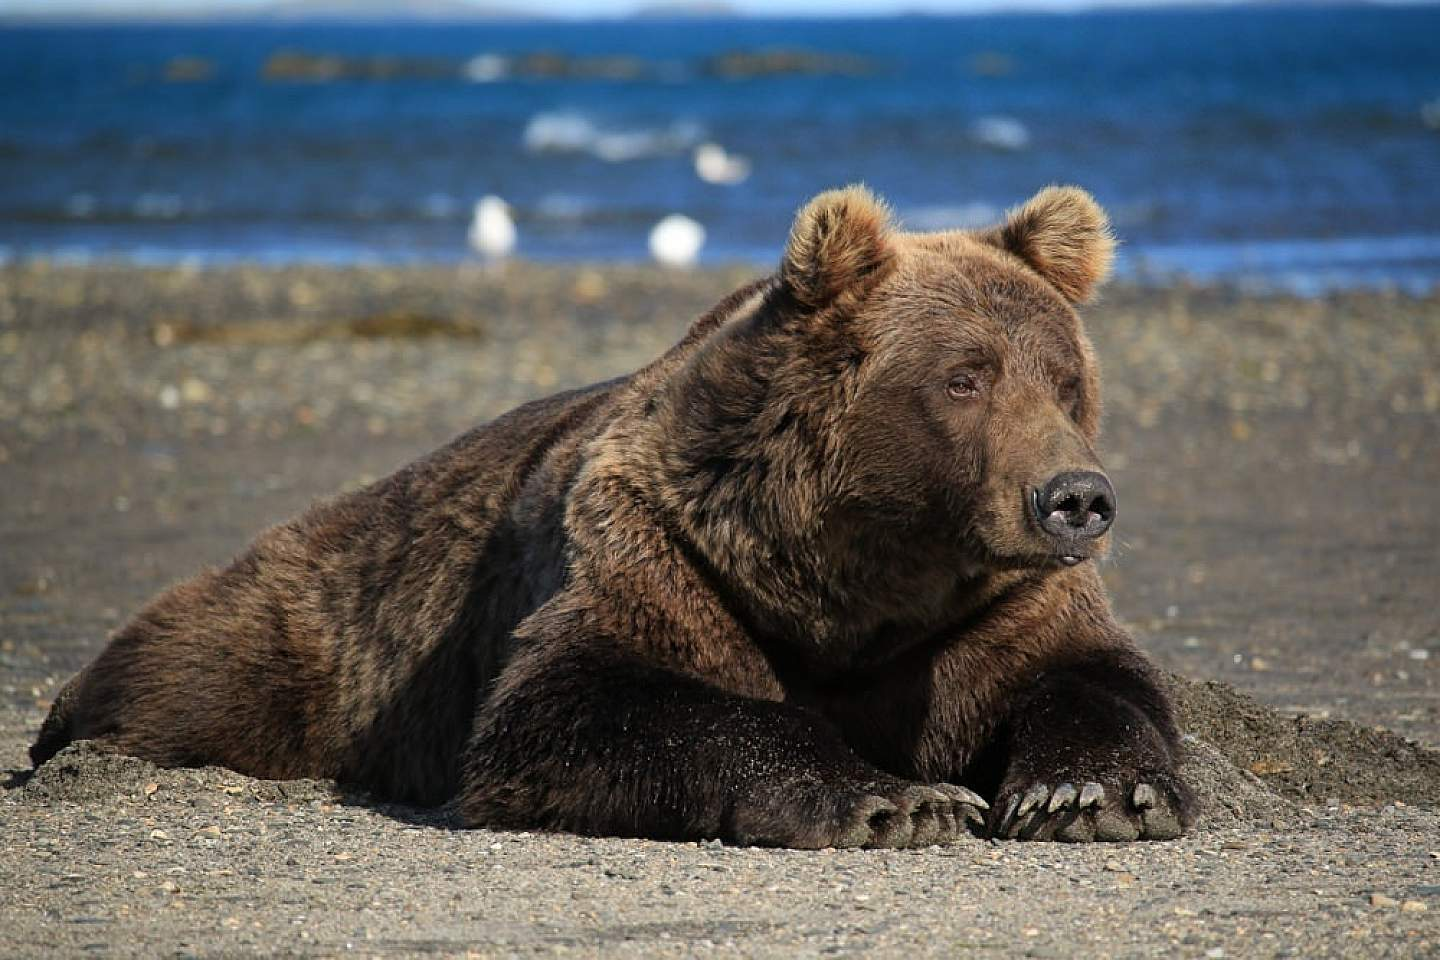 Experience the opportunity of a lifetime as you witness the Alaska Coastal Brown Bear in its natural environment